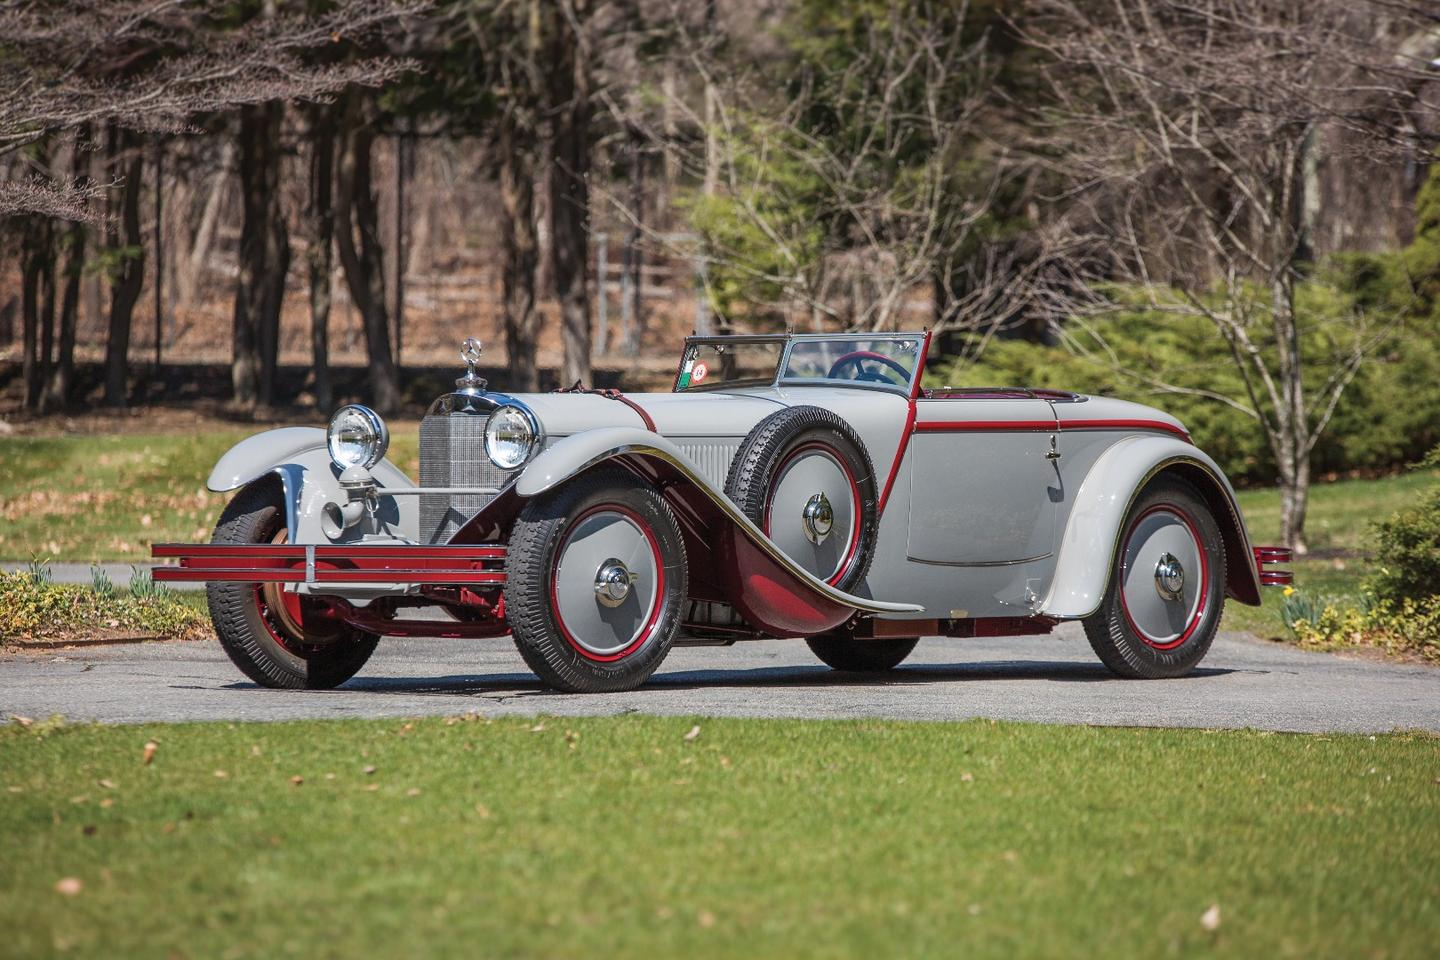 One of the best known and most impeccably credentialed cars in the world, this 1928 Mercedes-Benz 680 S Torpedo-Sport is already one of the top 100 most valuable cars in the world, having sold for $8,250,000 during Monterey Car Week in 2013, and it had previously been in the top 100 a decade ago, having sold for $3,645,000 during Monterey Car Week in 2006. The official estimate was €6.5 to €8.0 million (US$7.1 to 8.7 million), but bidding stopped at €5,050,000 and it was passed in. Auction Link